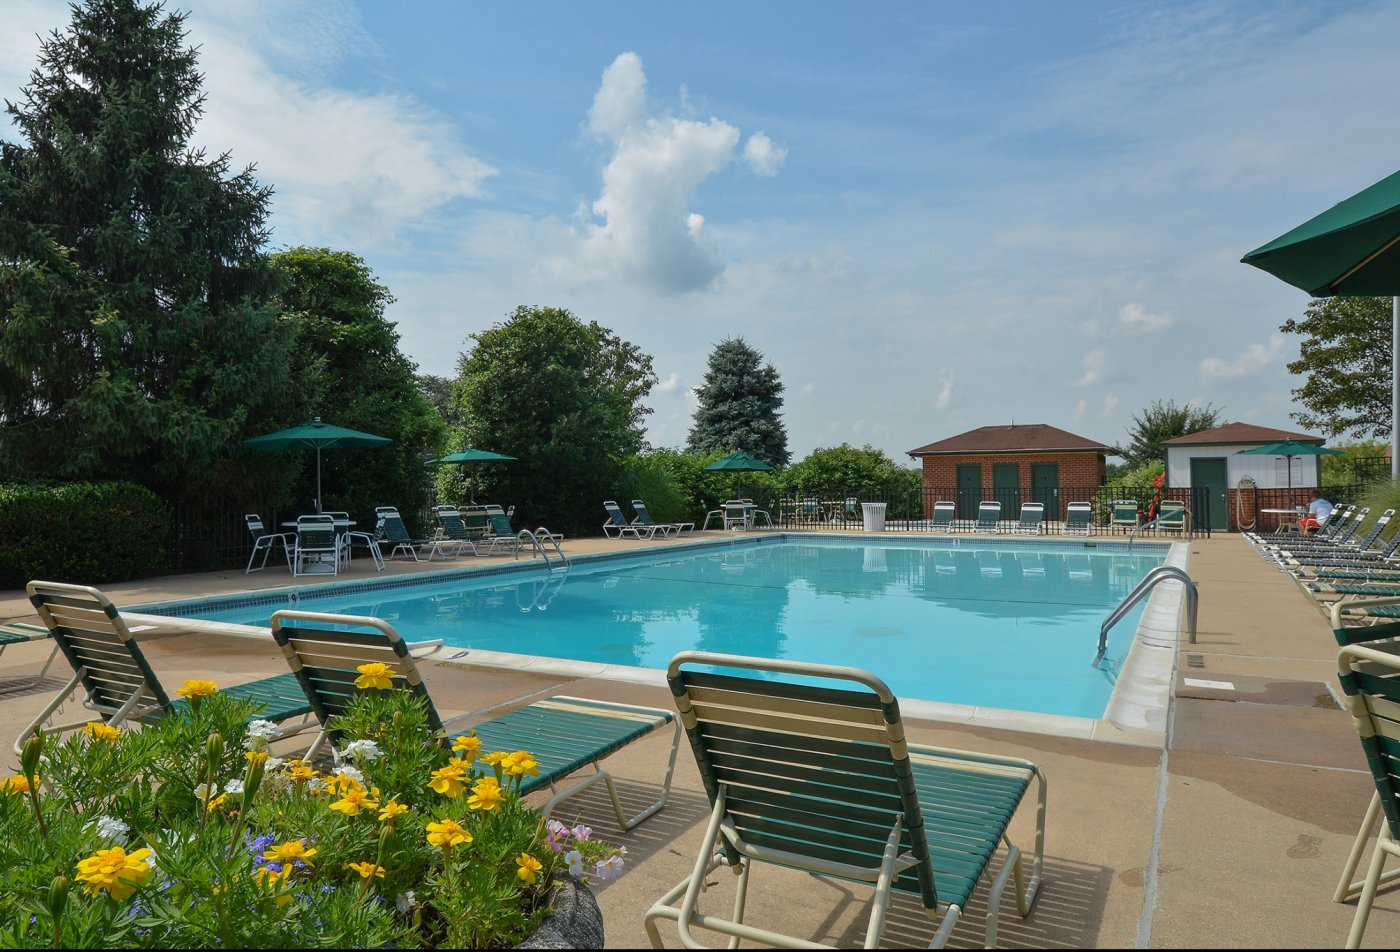 Swimming Pool   Apartment Homes in Wilmington, DE   Fairway Park Apartments & Townhomes